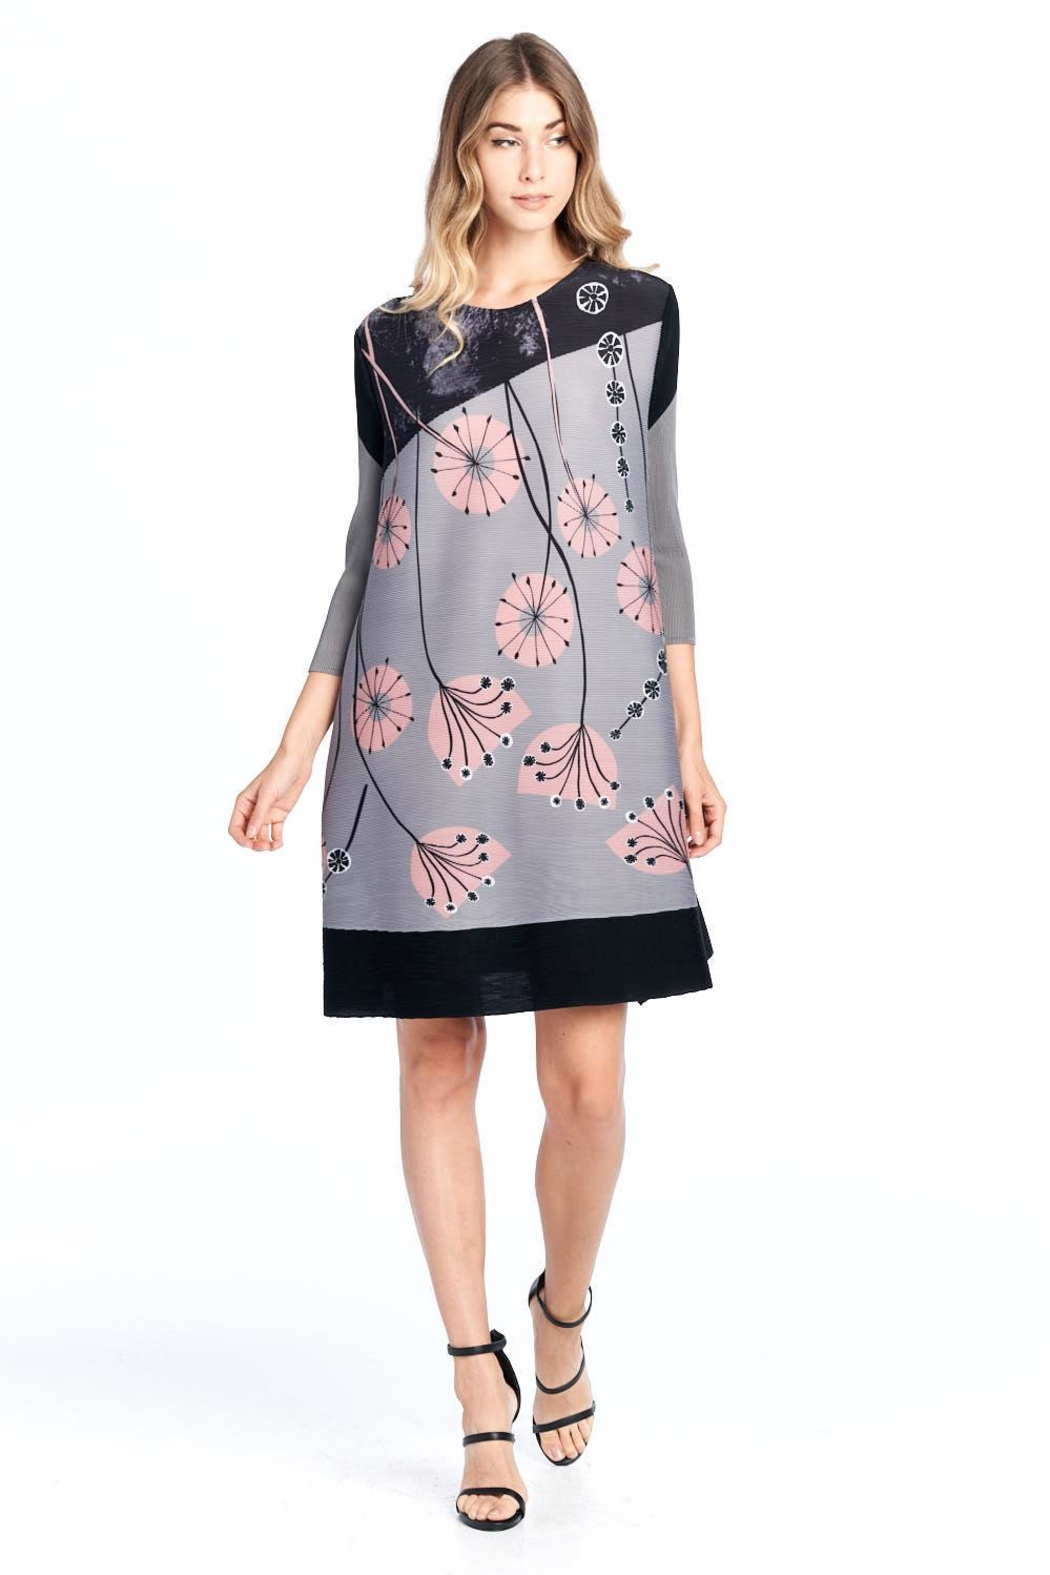 5a080c2050 Nabisplace Pleated Gyasiflower Graydress from California by ...